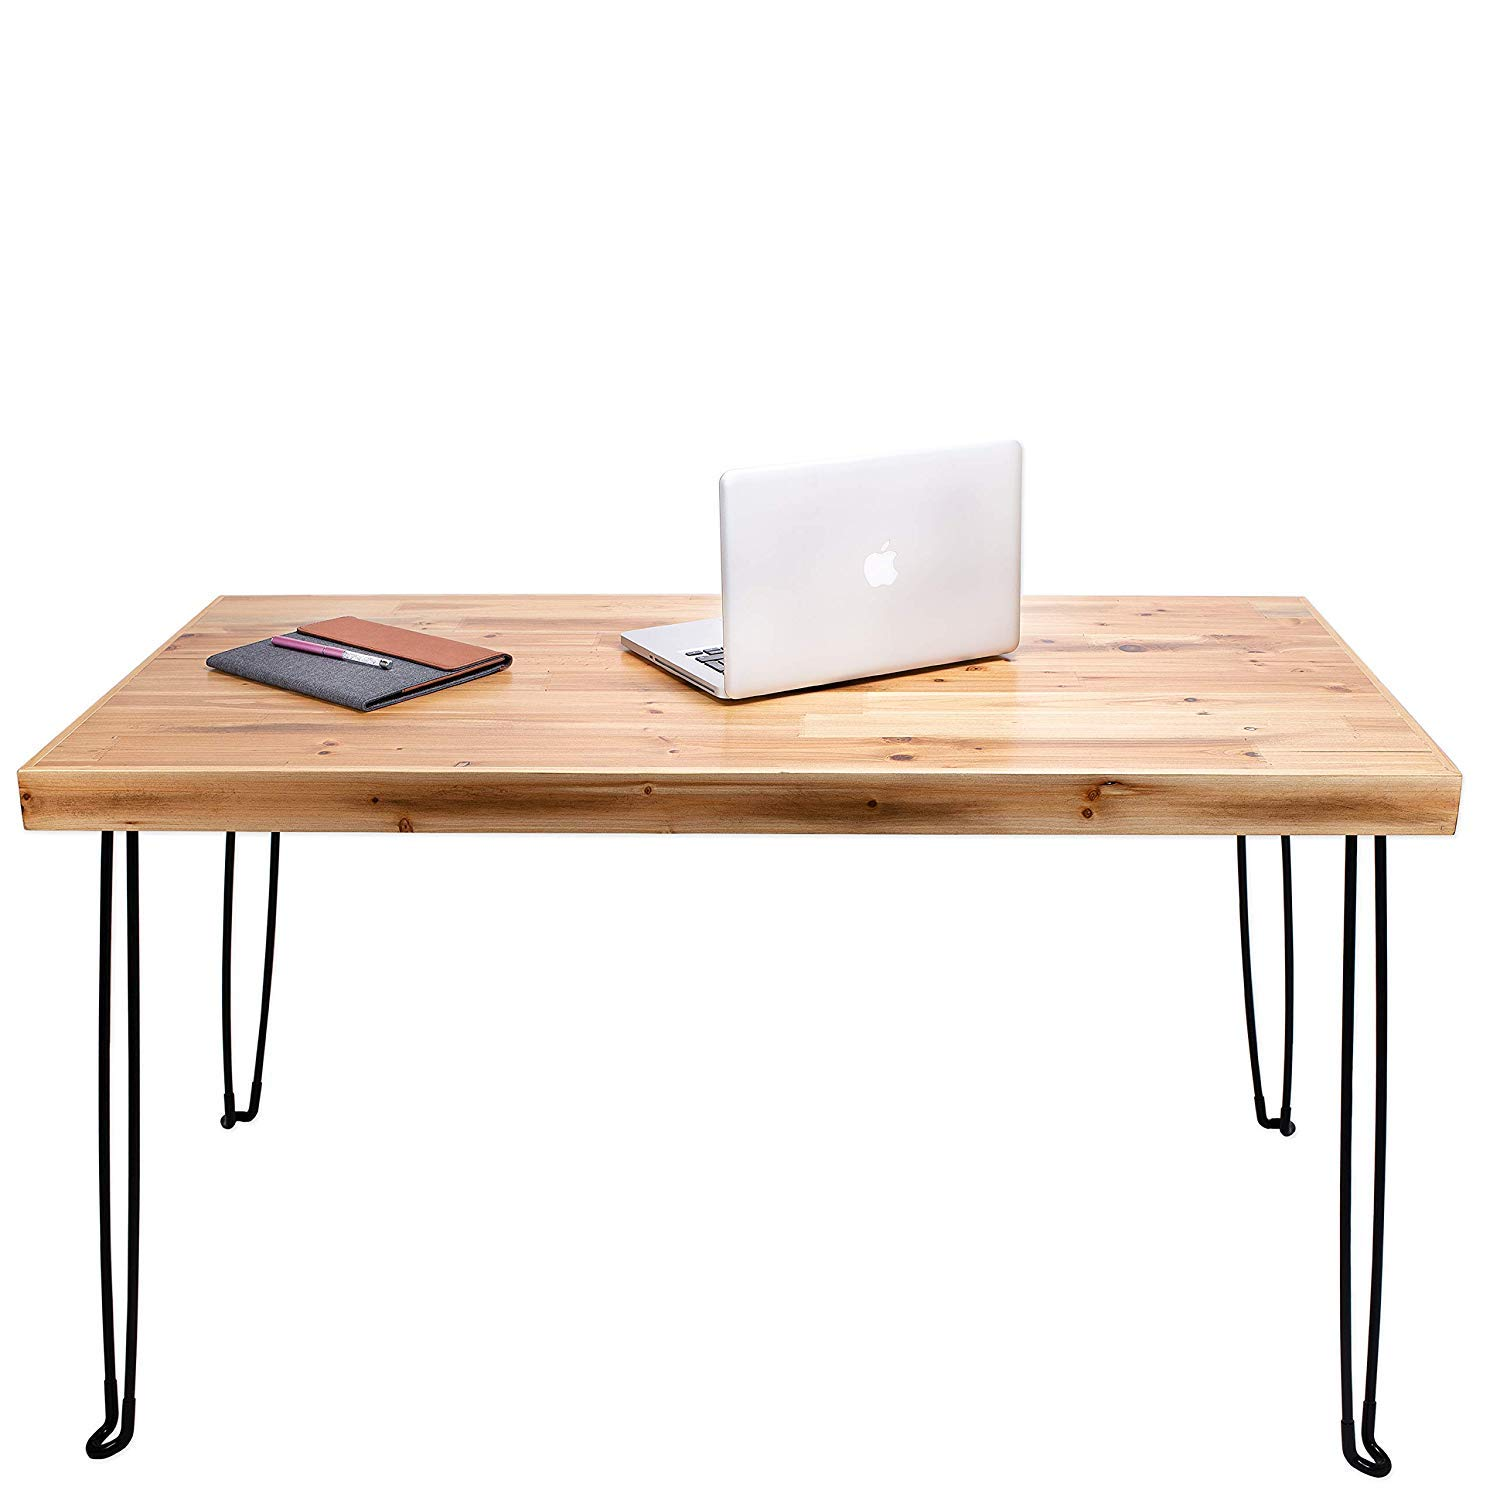 Folding Wood Metal Desk 47"